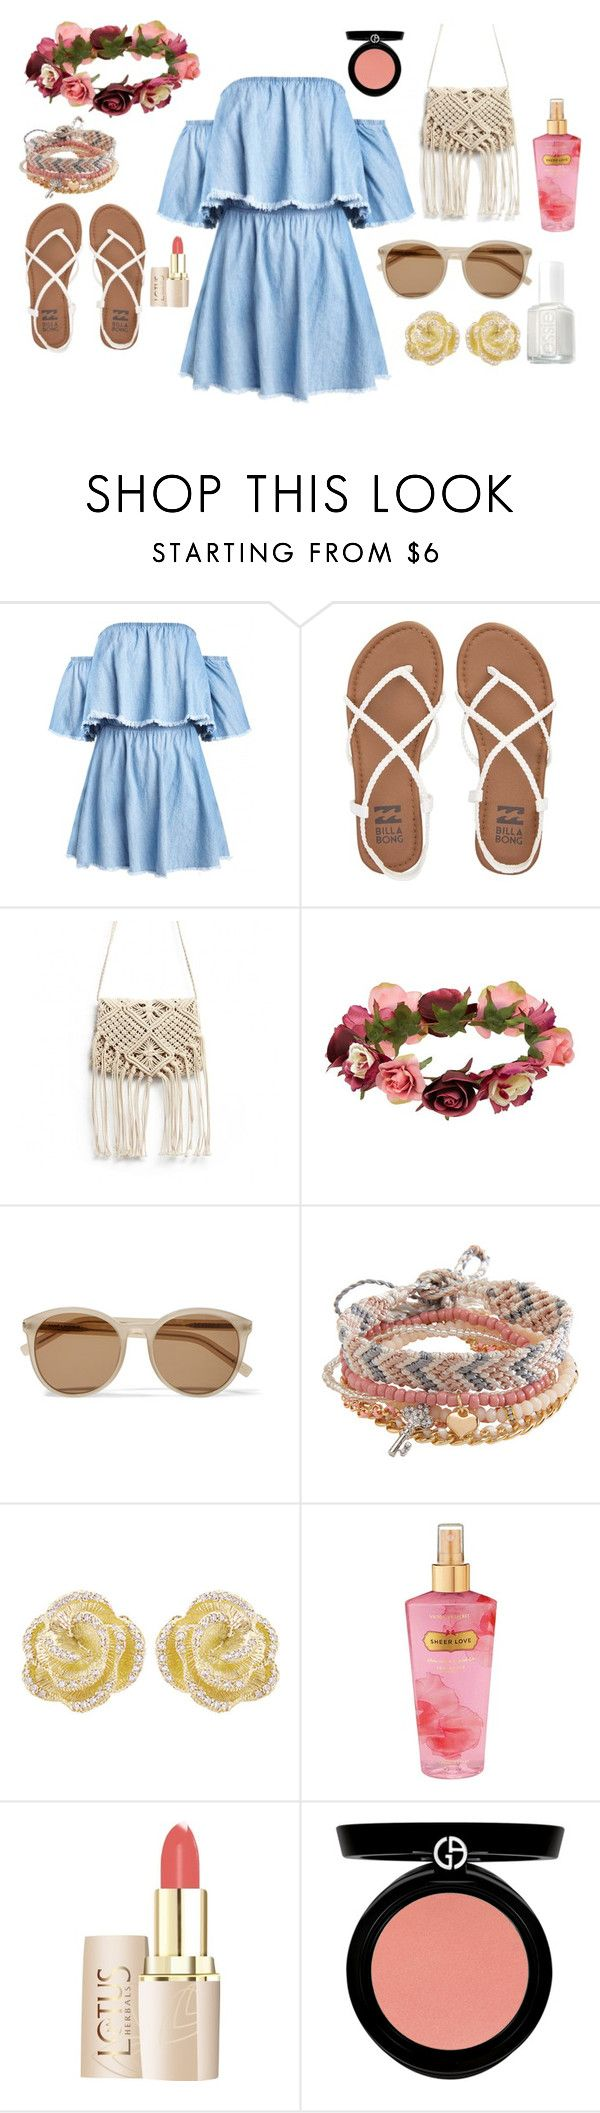 """""""on the bare"""" by alpha-female ❤ liked on Polyvore featuring Billabong, Forever 21, Yves Saint Laurent, Aéropostale, Effy Jewelry, Victoria's Secret, Armani Beauty and Essie"""